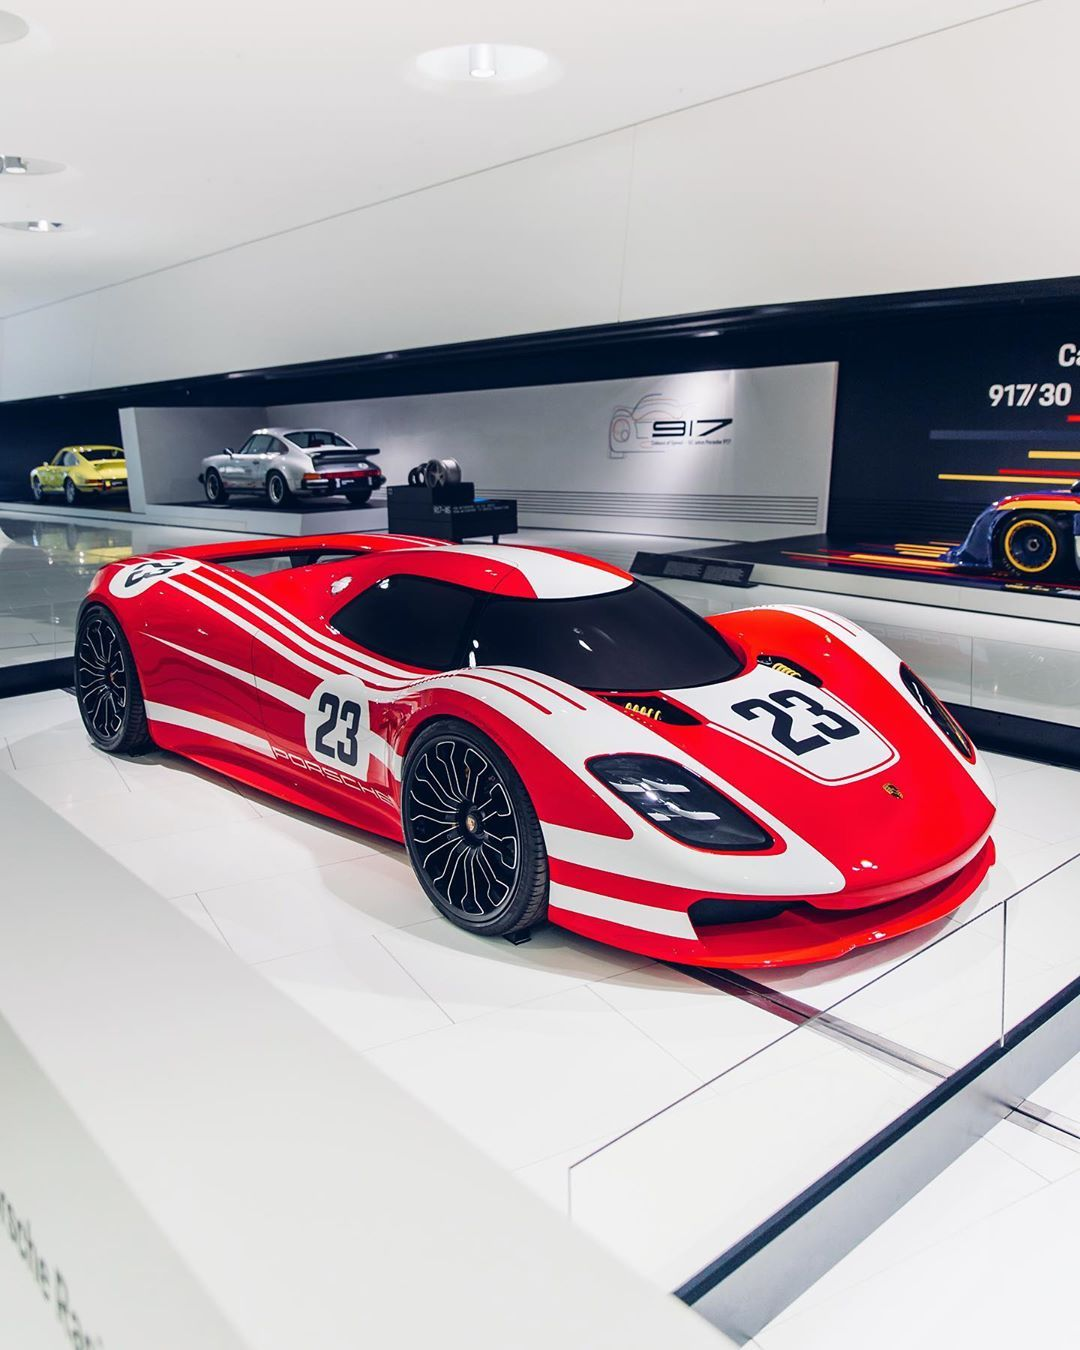 """Alex Penfold on Instagram: """"It would have been wrong to go through Stuttgart and not check out the 917 Concept Study. #porsche #917 #conceptstudy"""""""